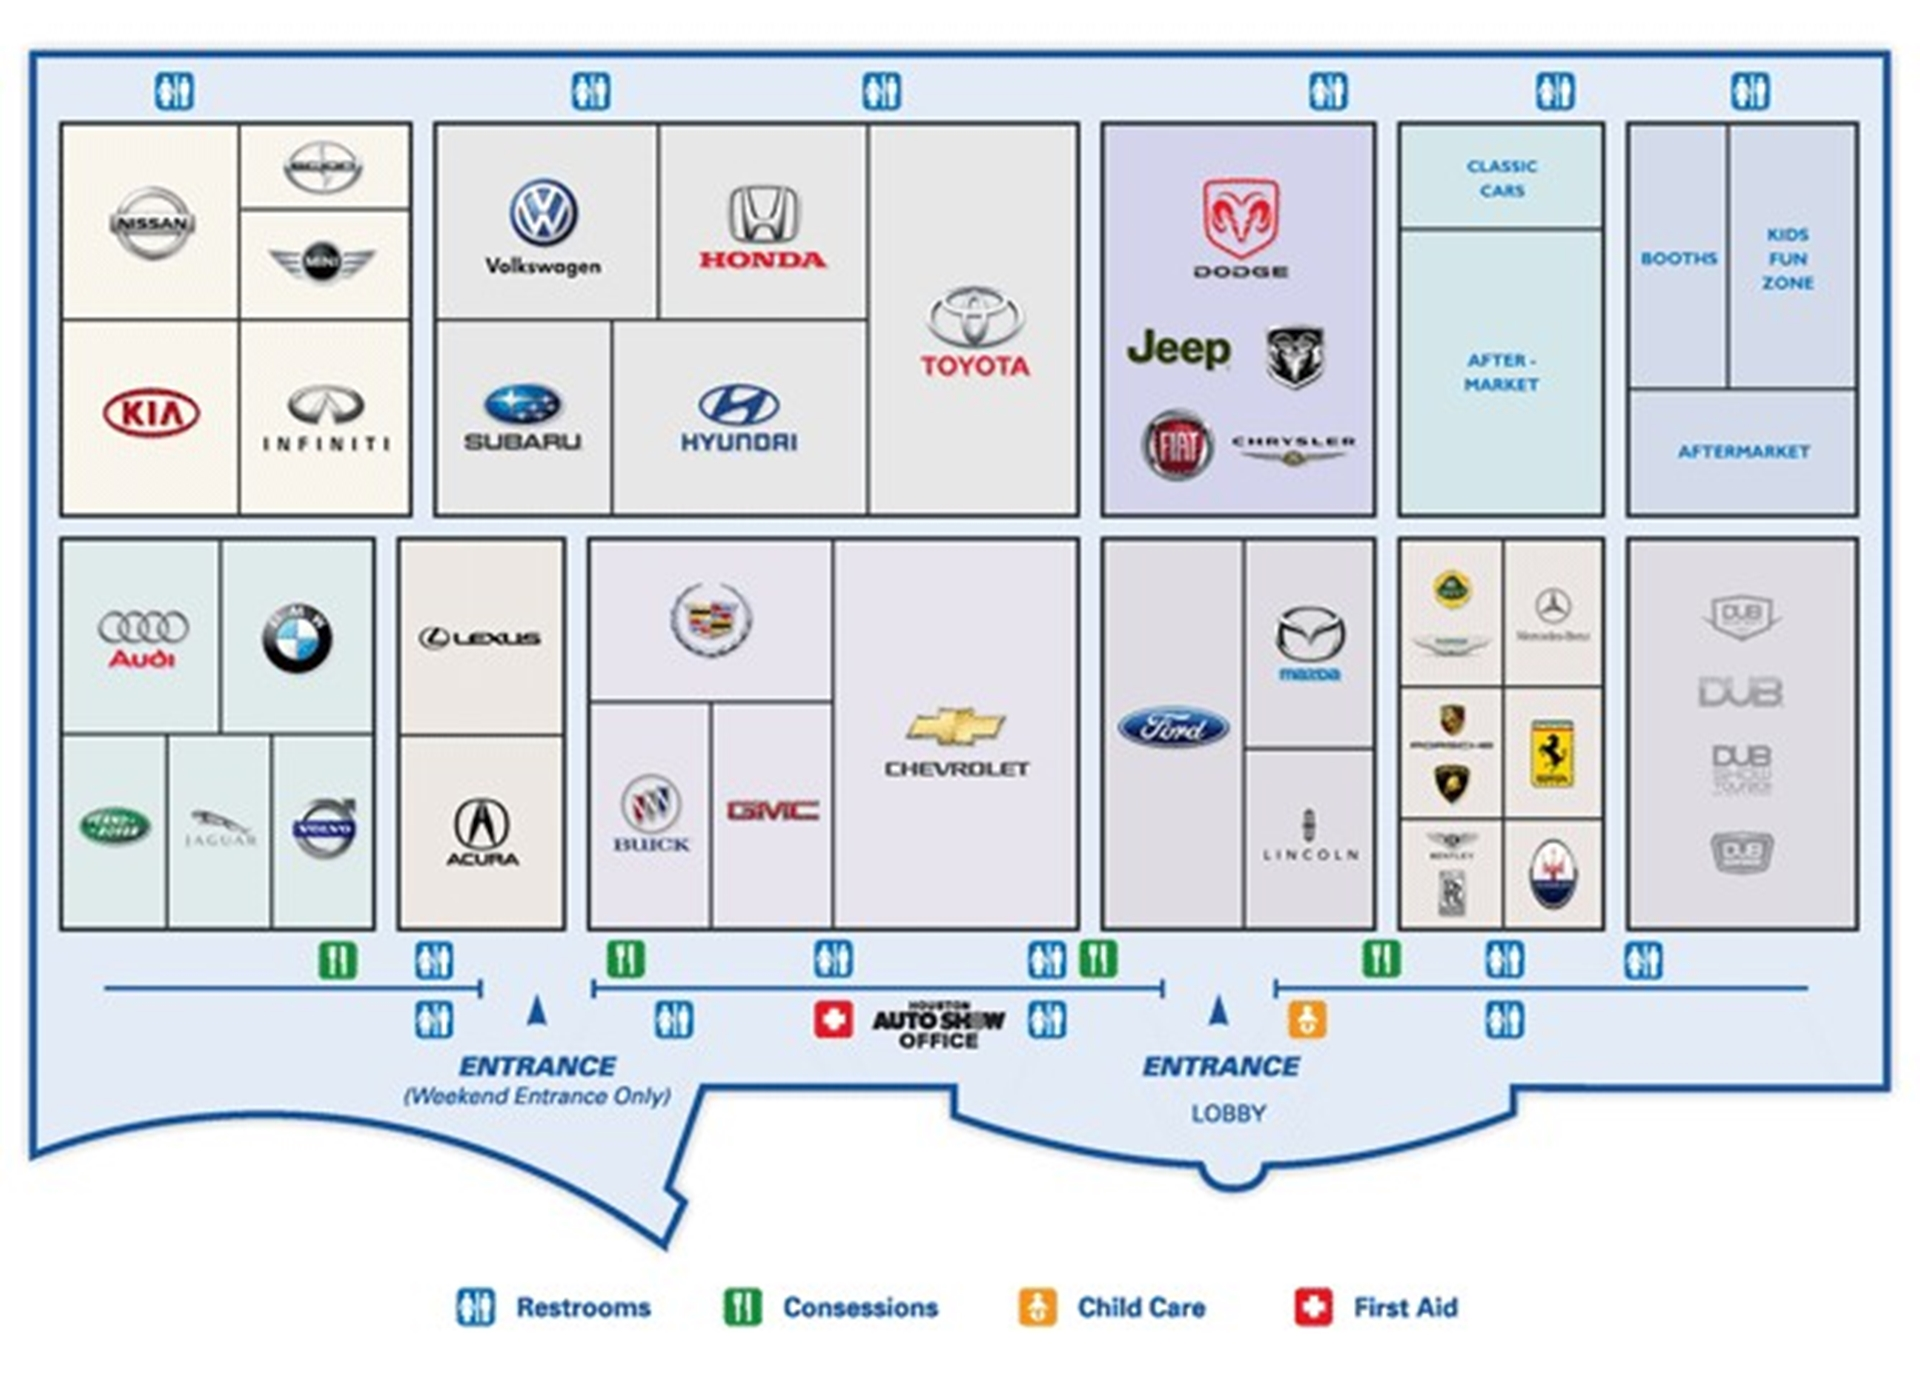 Houston Auto Show 2012 Floor Plan